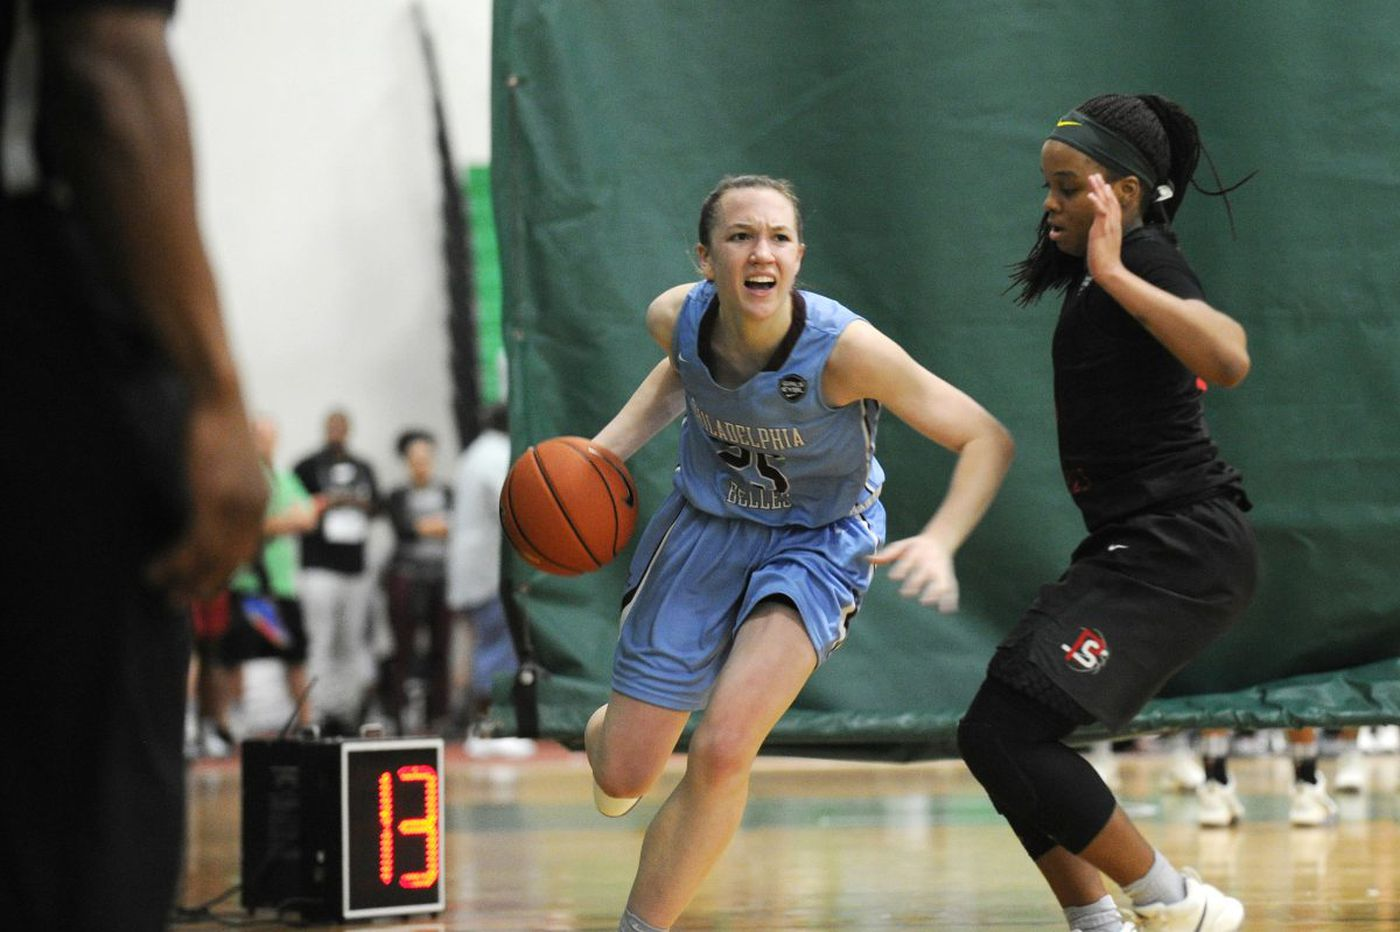 Jensen: In women's basketball, a star recruit is almost never too young